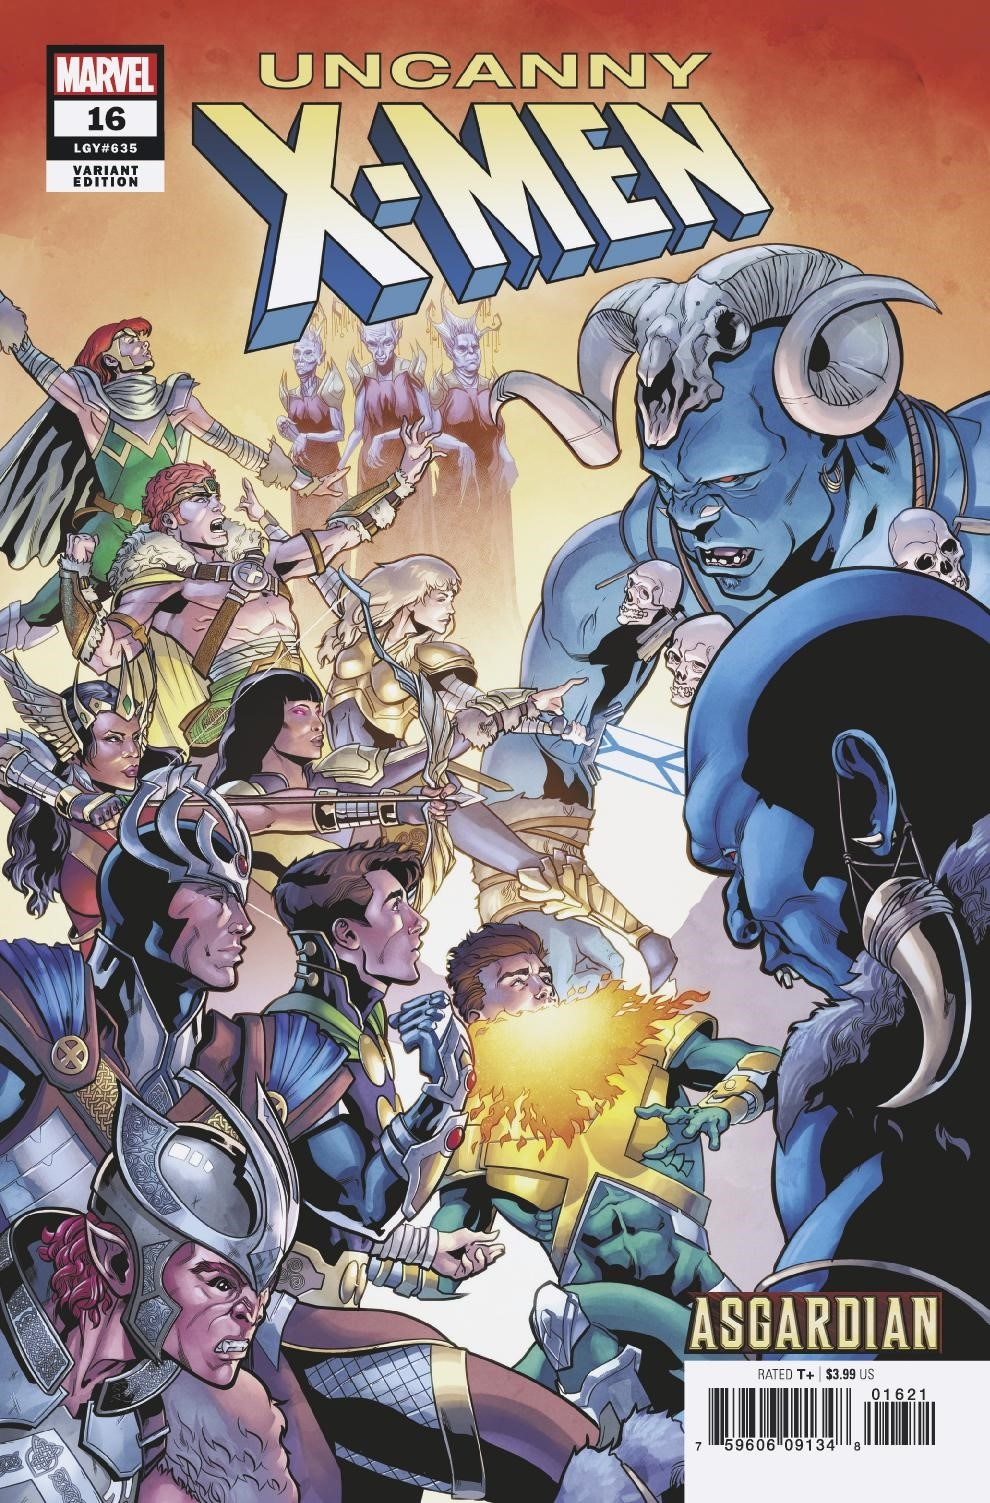 UNCANNY X-MEN #16 SLINEY ASGARDIAN VAR